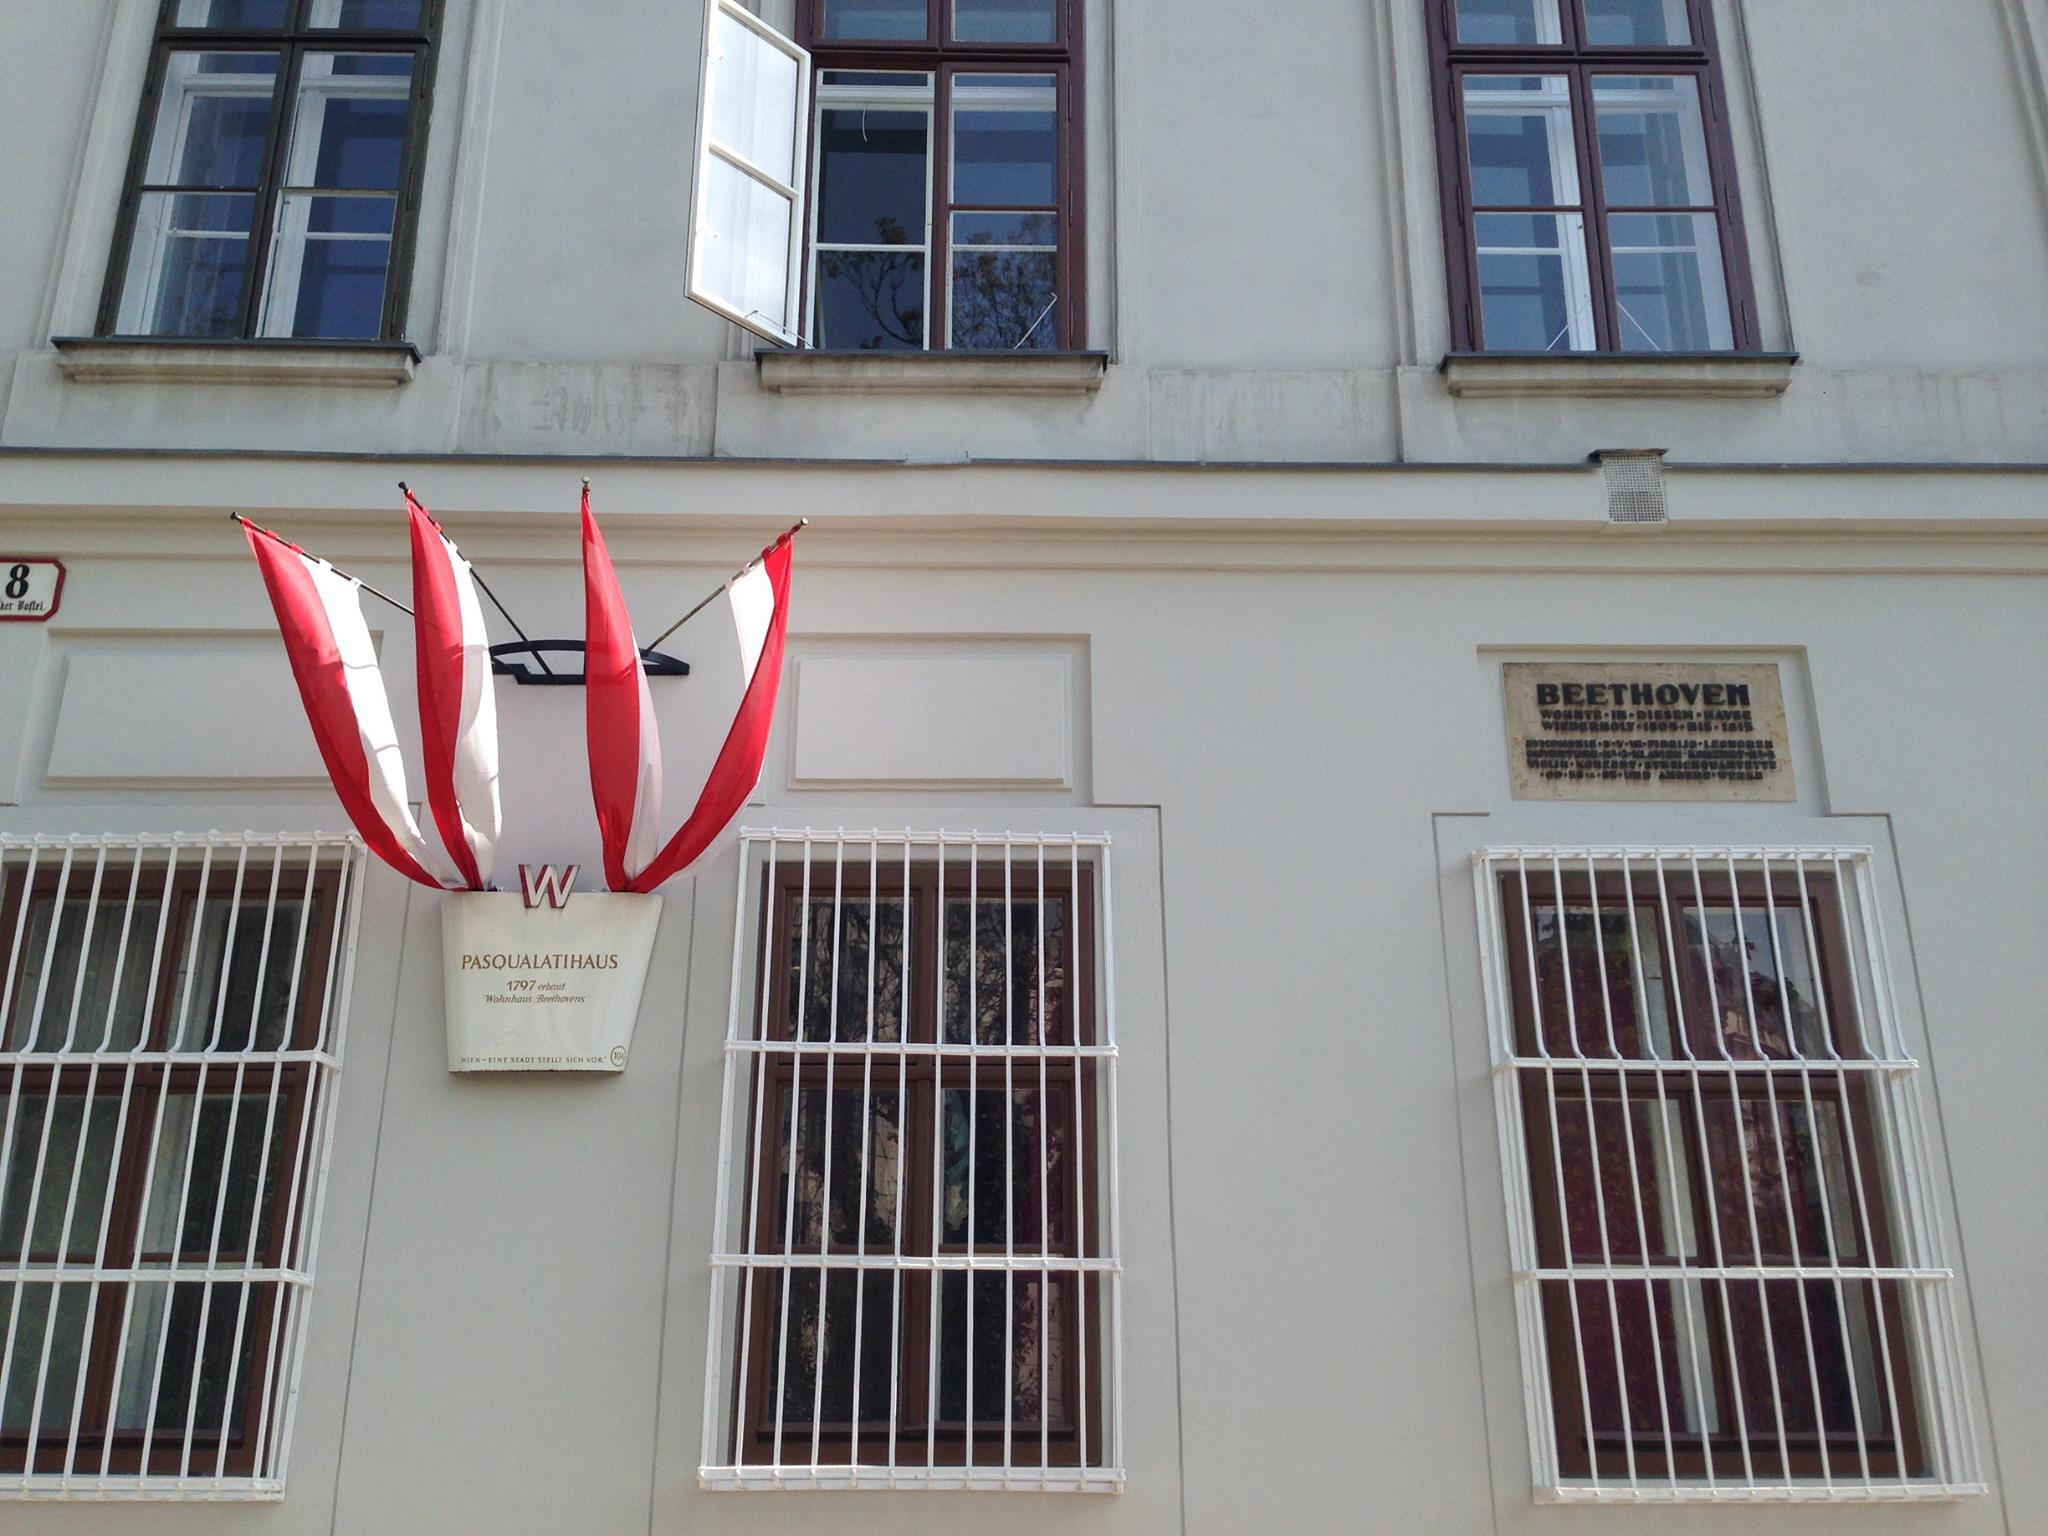 The Beethoven House